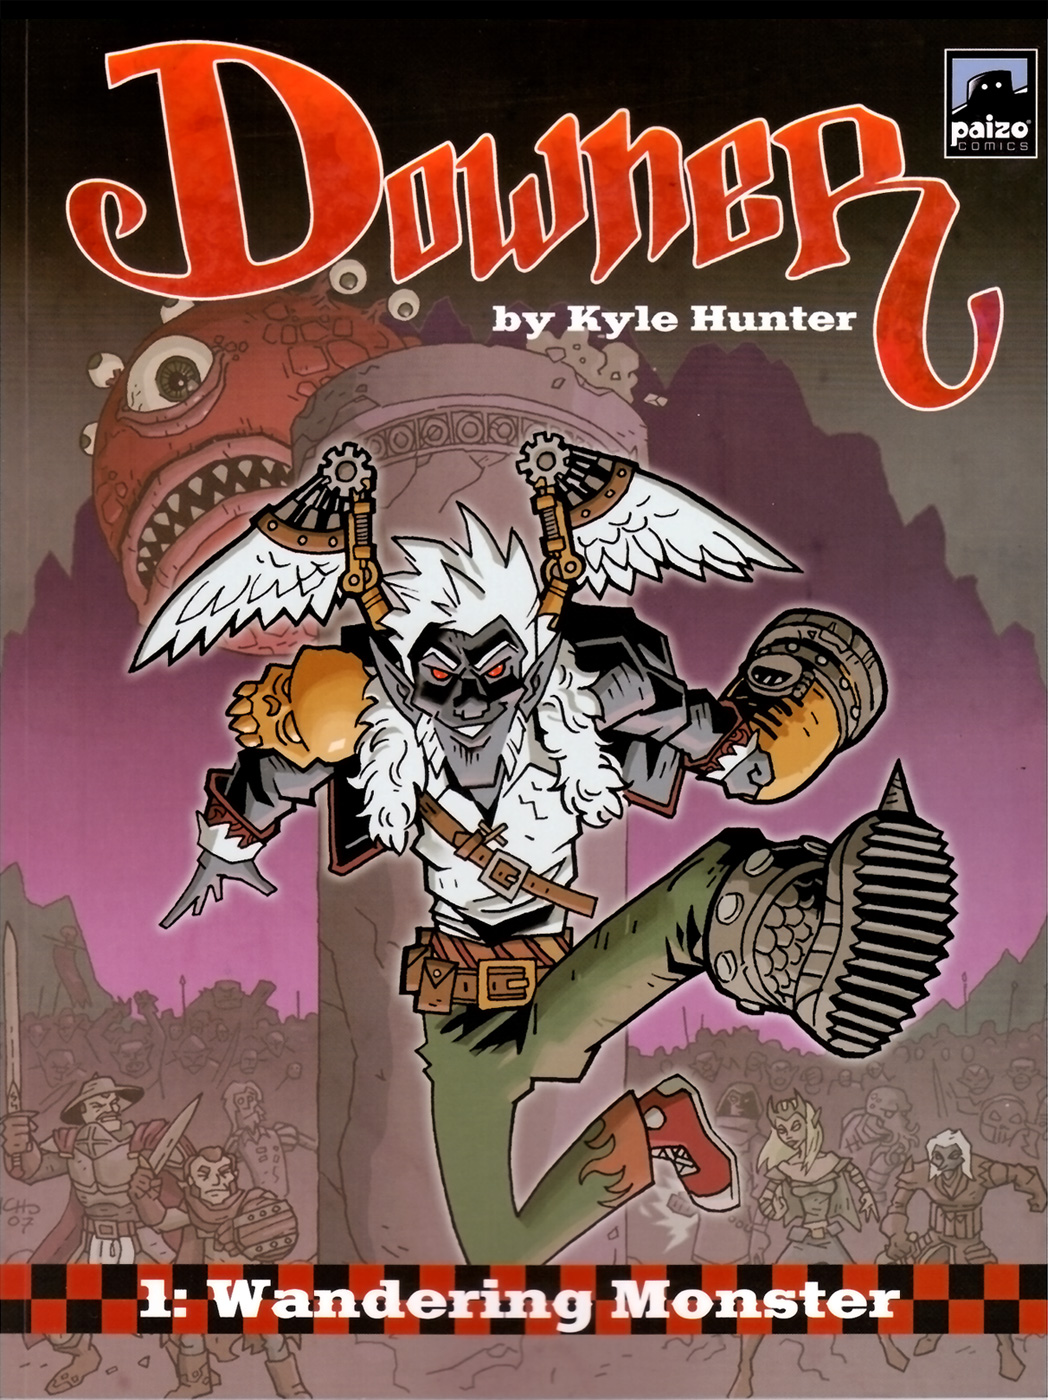 Downer_1-Wandering_Monster_by_Kyle_Stanley_Hunter-%282007%29_Paizo_Comics-pag01.jpg